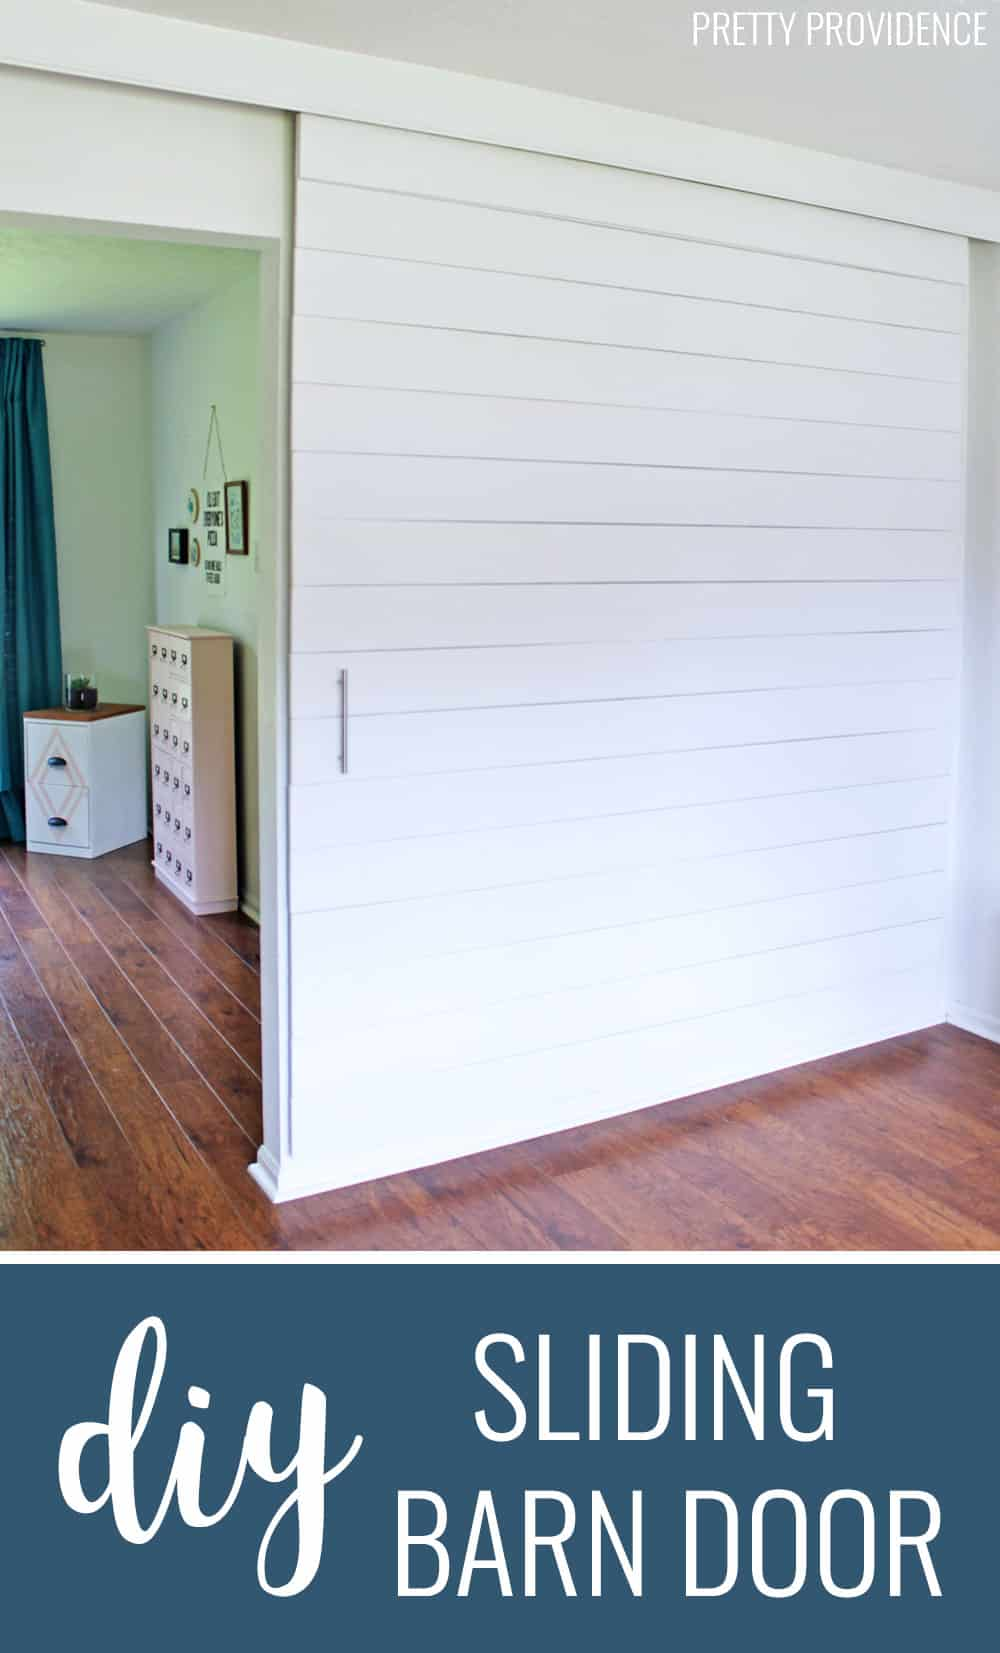 This DIY sliding barn door painted white is perfect DIY project for modern and farmhouse decor!